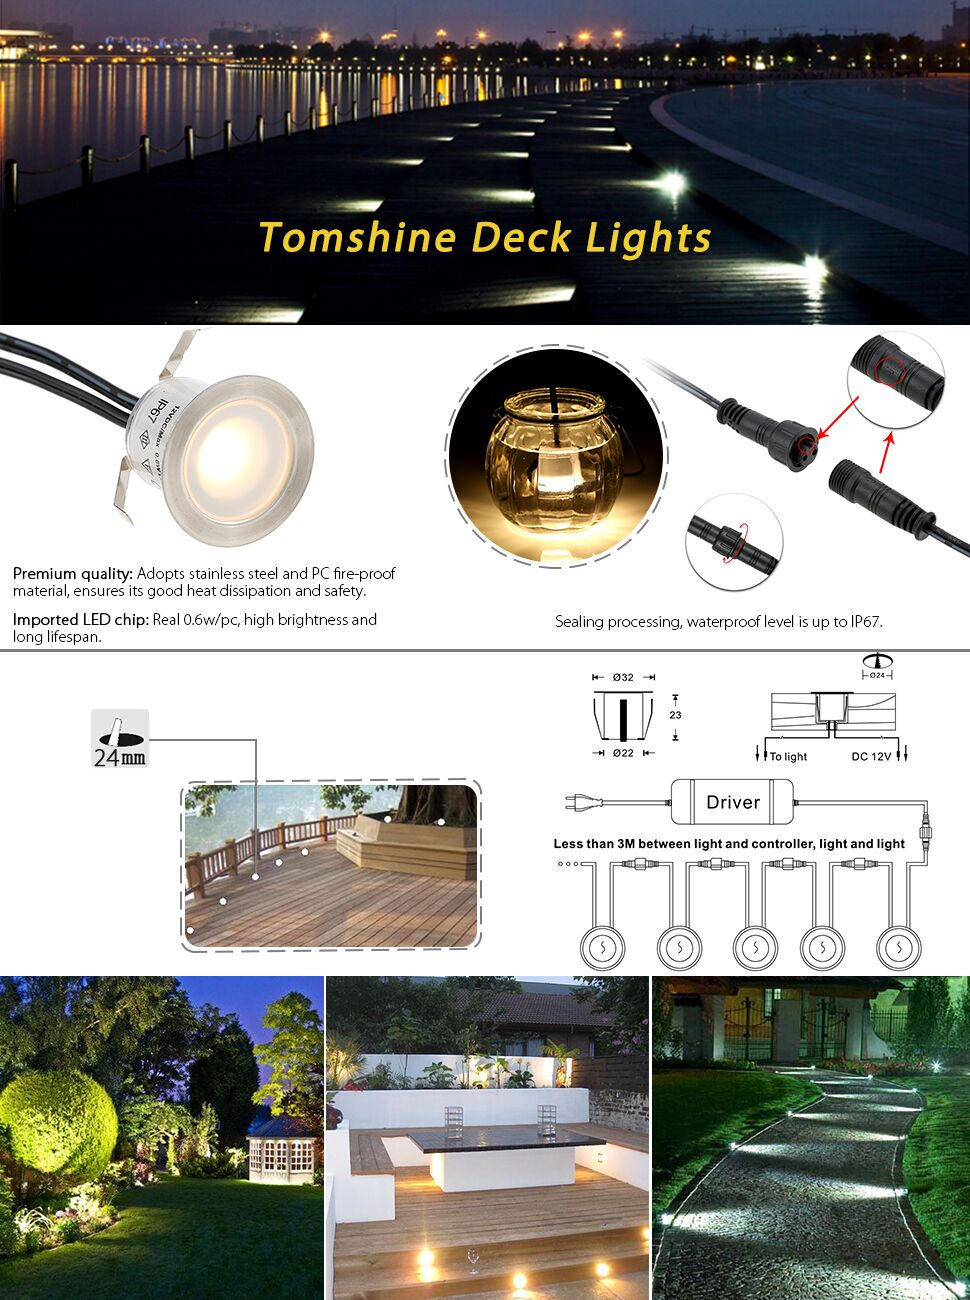 Tomshine 16 Pack Recessed Led Deck Light Kit High Bright In Ground Outdoor Lighting Diy Plans Low Voltage Wiring Ccextension Cable For This Lightsb07d7ptl1w